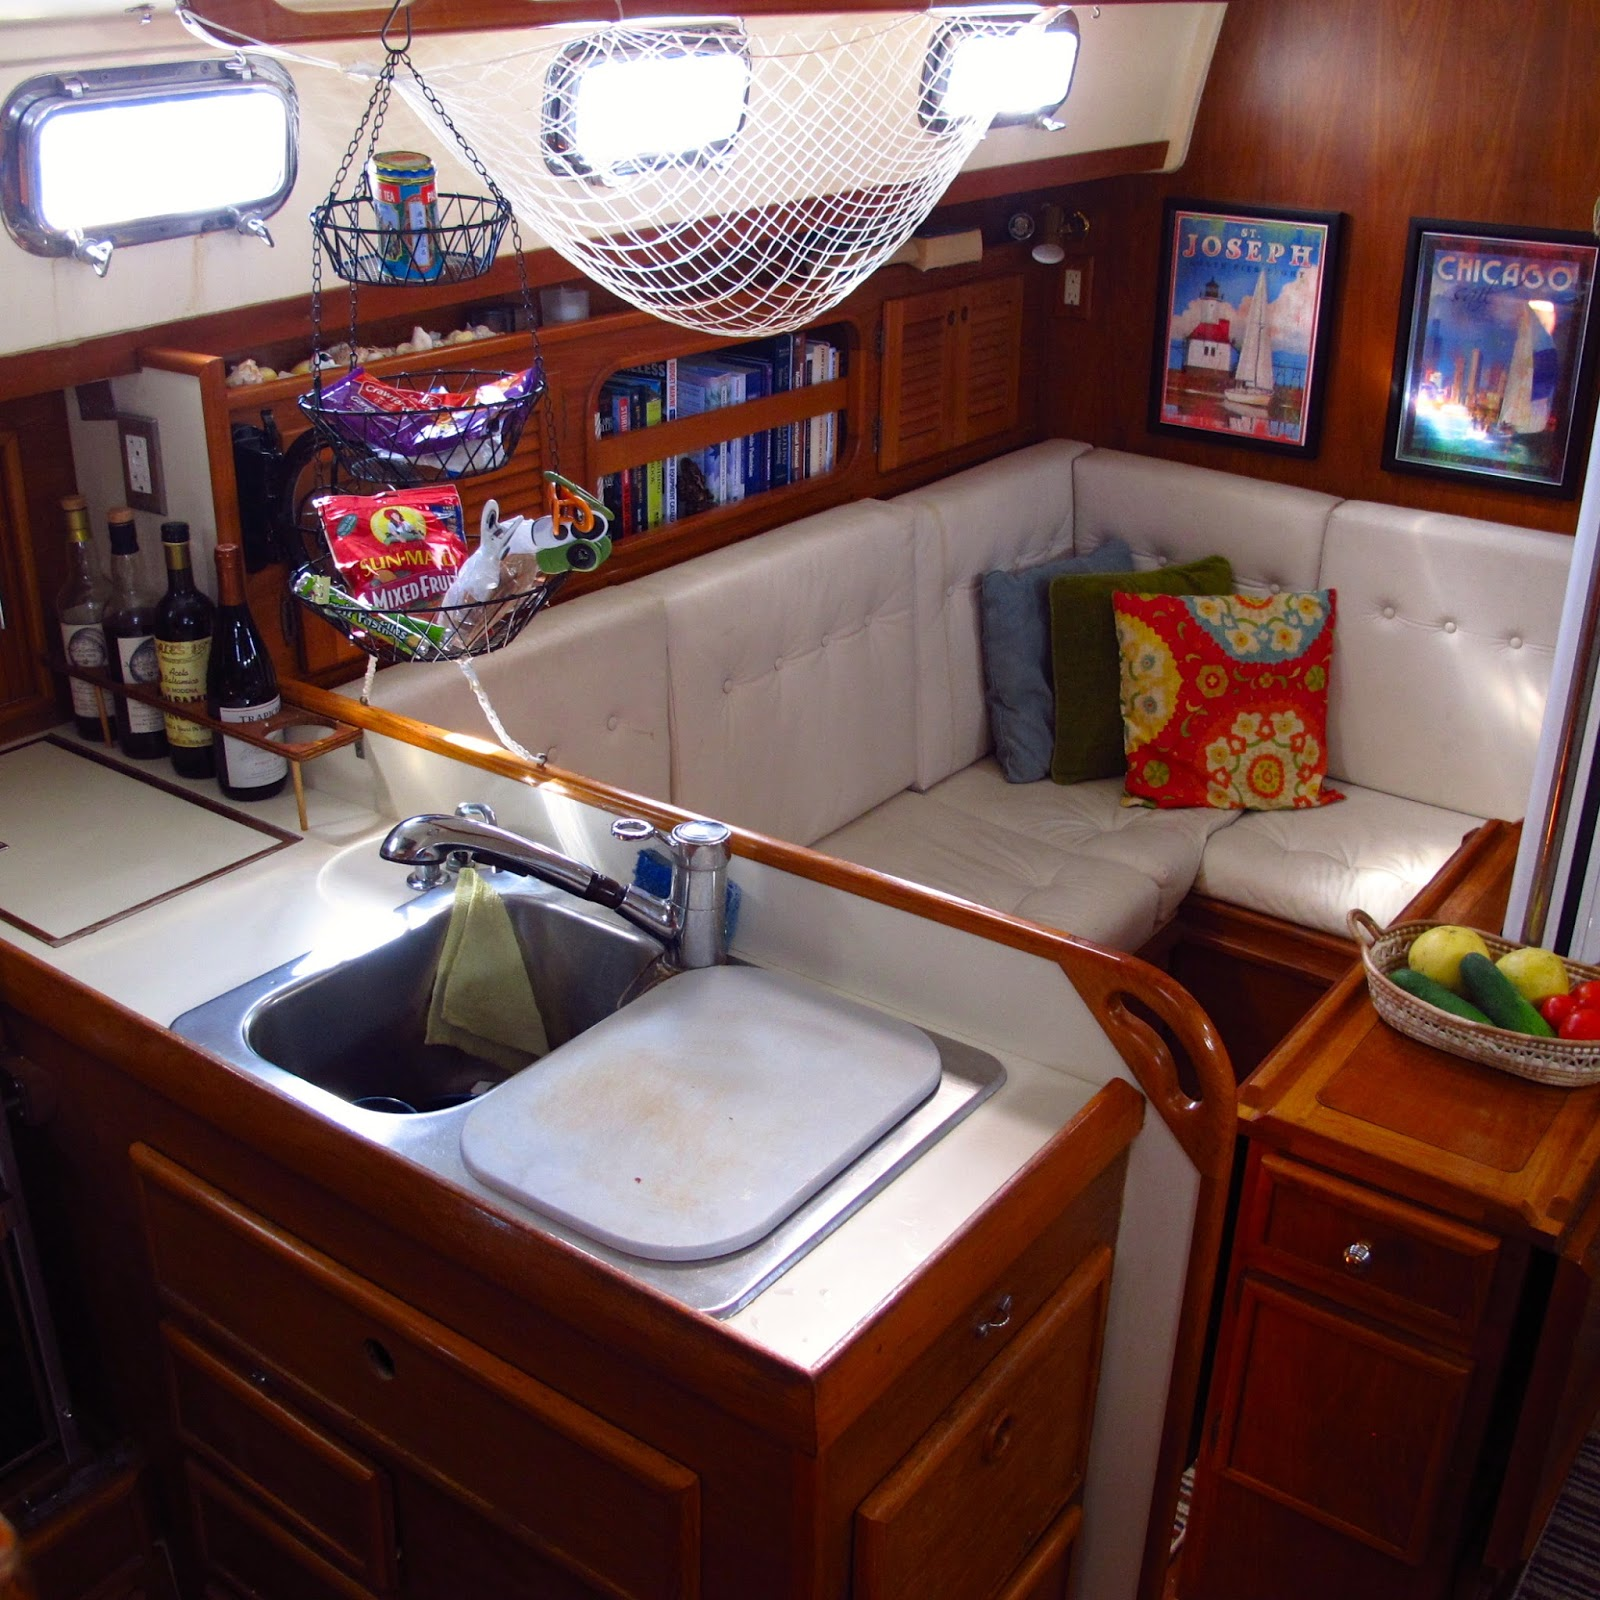 Boat Interior Design Ideas impressive boat interior design ideas with rykunov interior starcraft yacht The Same View Port Side We Made The Custom Sink Covercutting Board Out Of Starboard Extra Counter Space